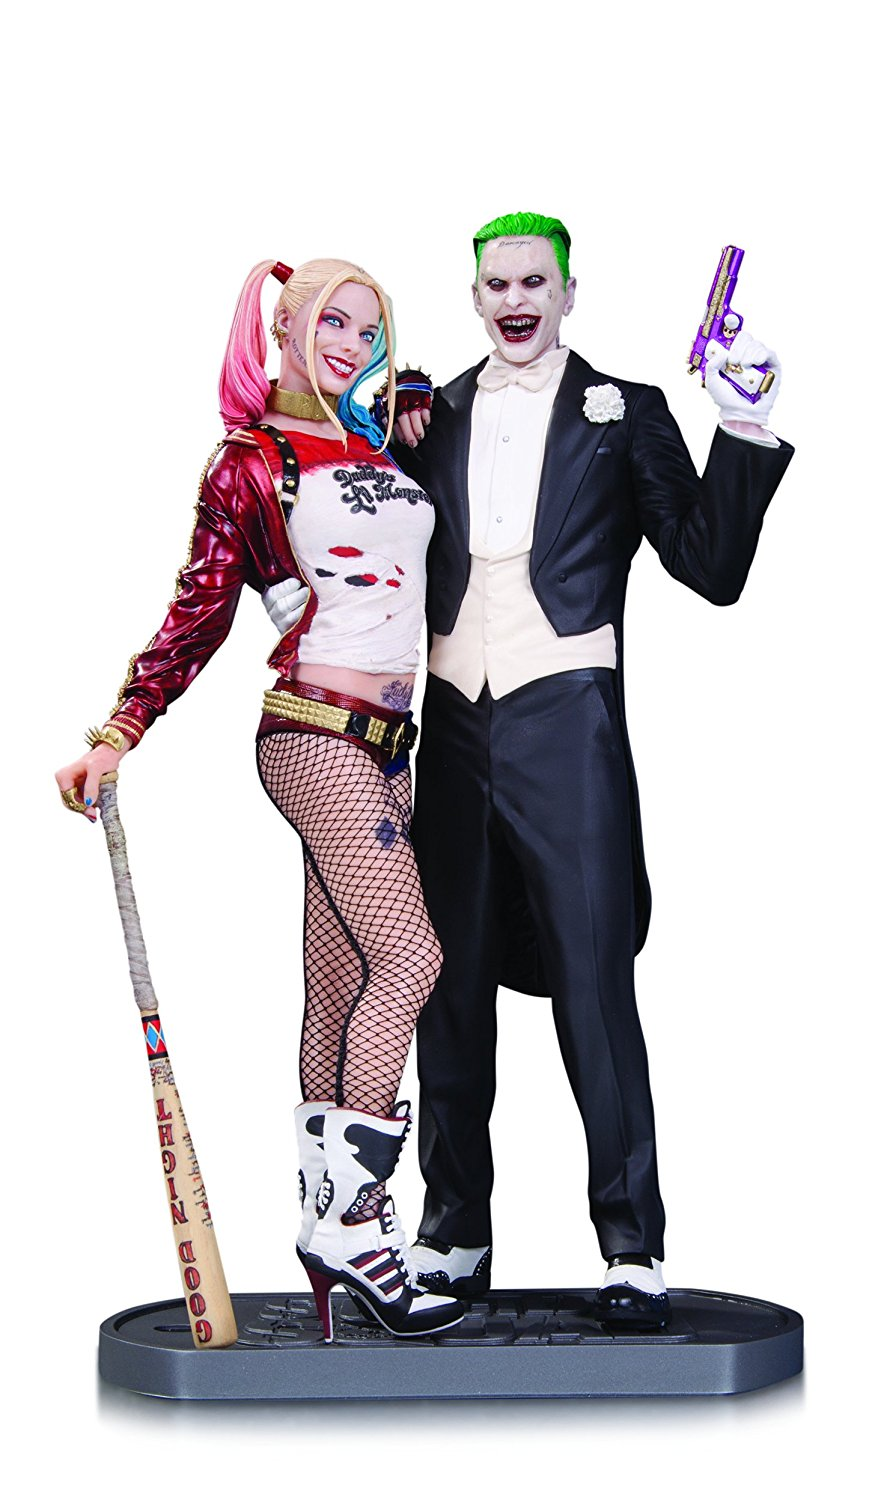 DC Collectibles Suicide Squad Movie: The Joker and Harley Quinn Statue by DC Collectibles